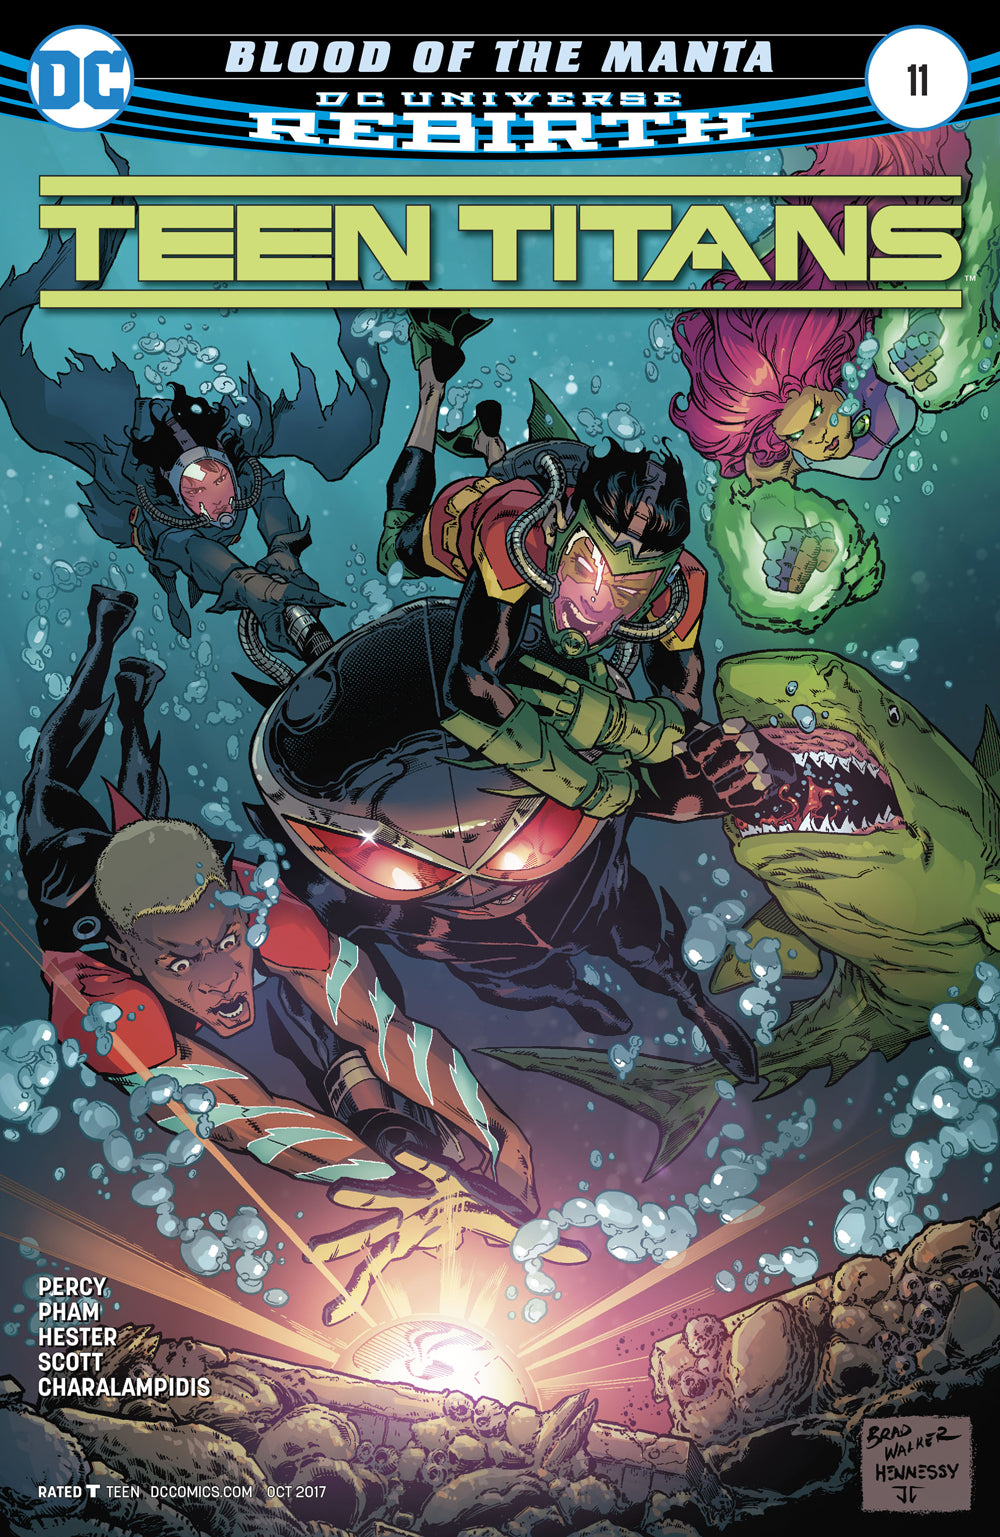 TEEN TITANS #11 | Game Master's Emporium (The New GME)